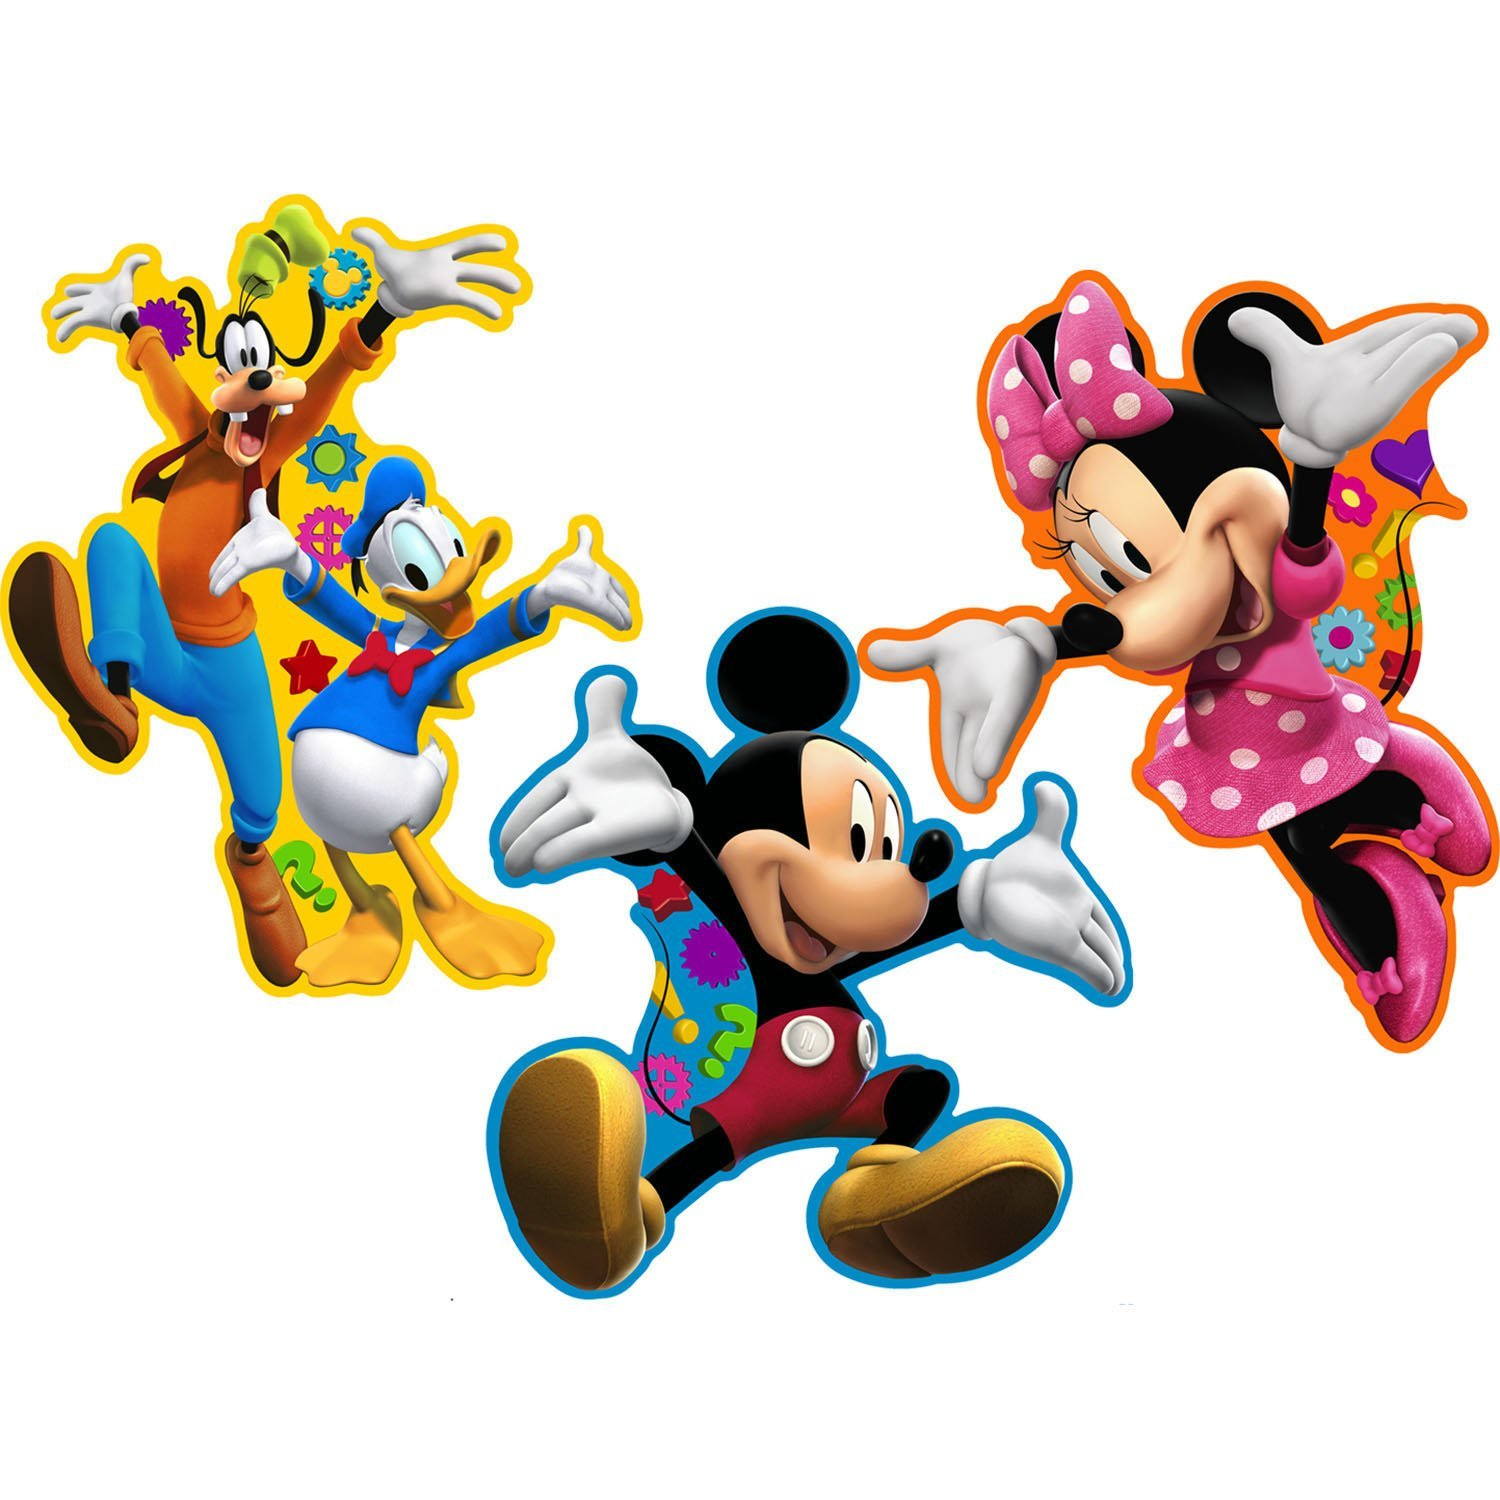 1500x1500 Cartoon Clipart Mickey Mouse Clubhouse Clipart Gallery ~ Free